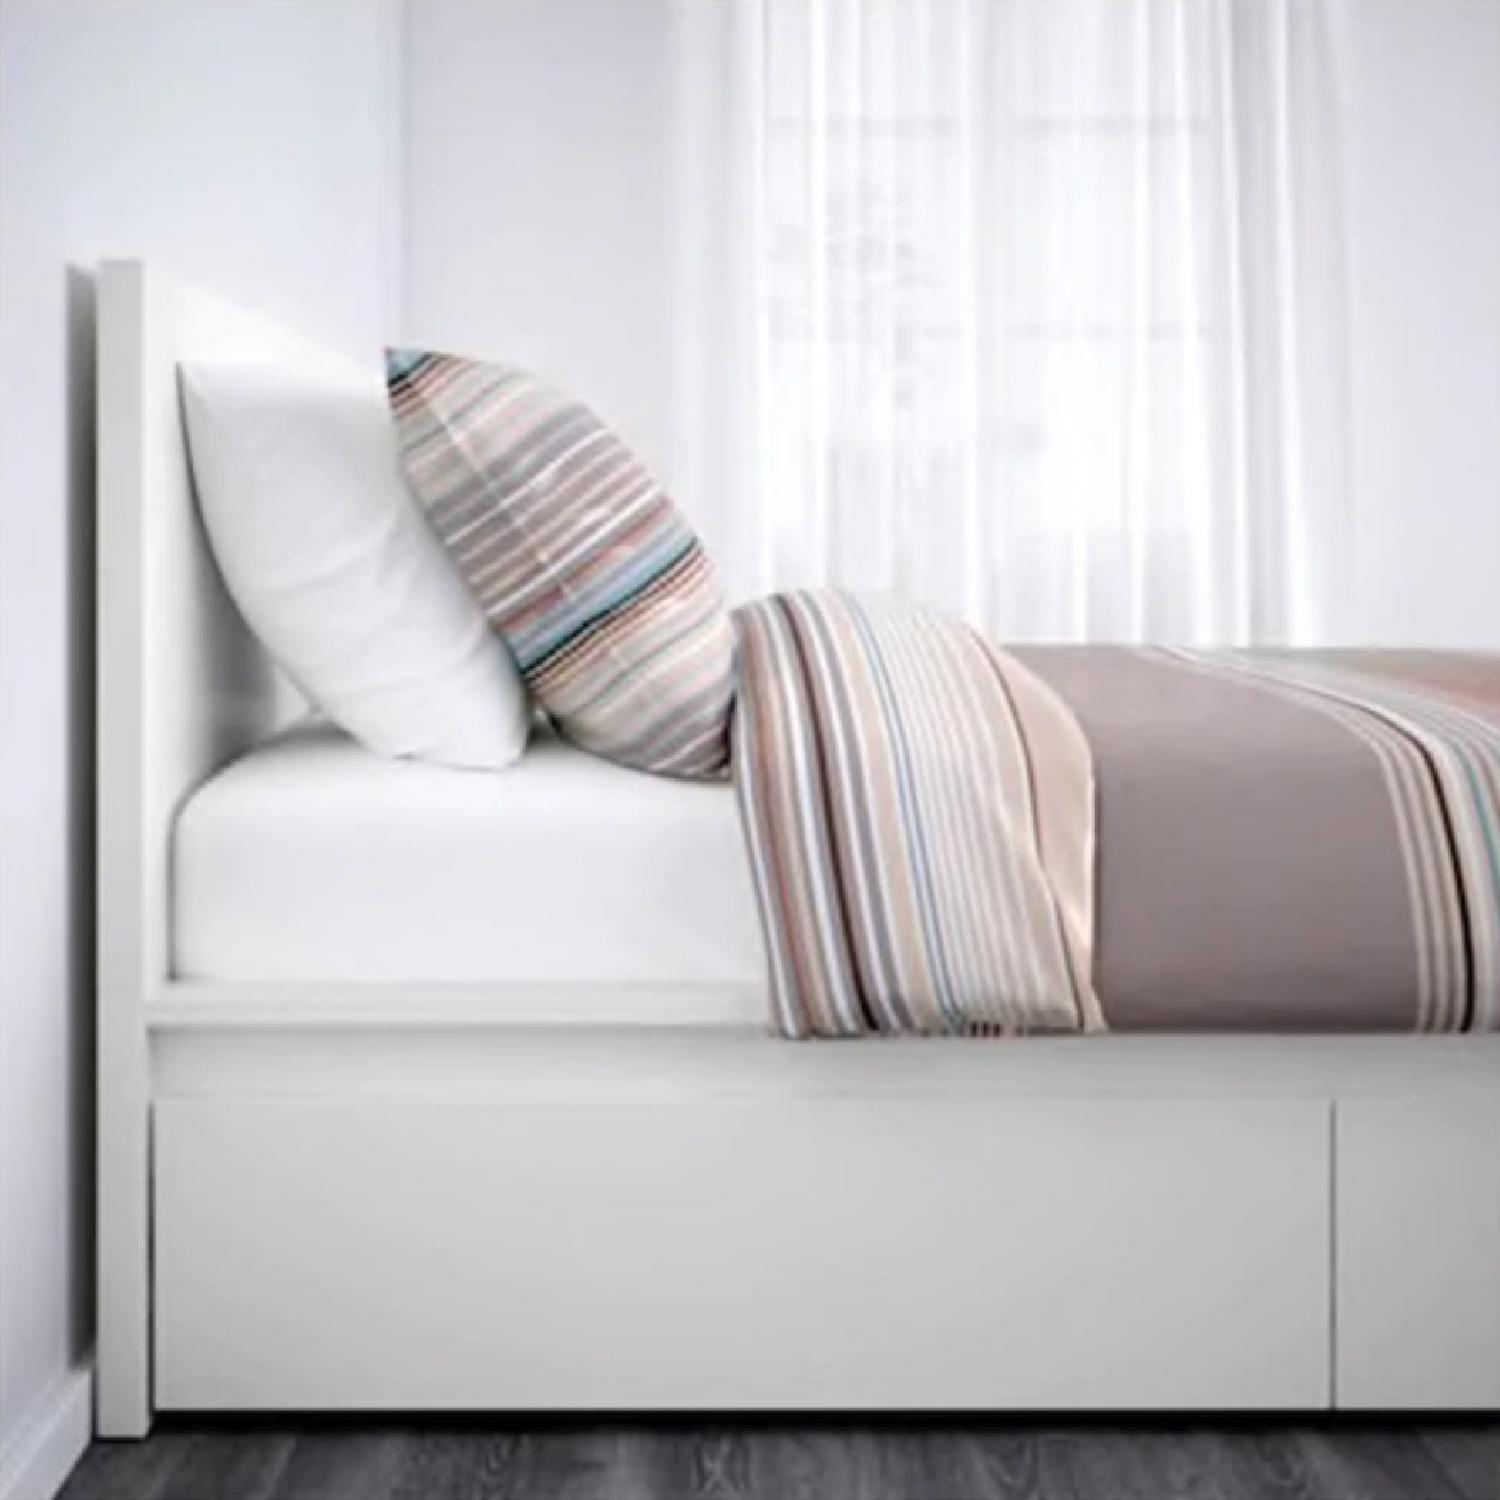 Swell Ikea Malm Bed Frame W Storage Drawers Aptdeco Creativecarmelina Interior Chair Design Creativecarmelinacom